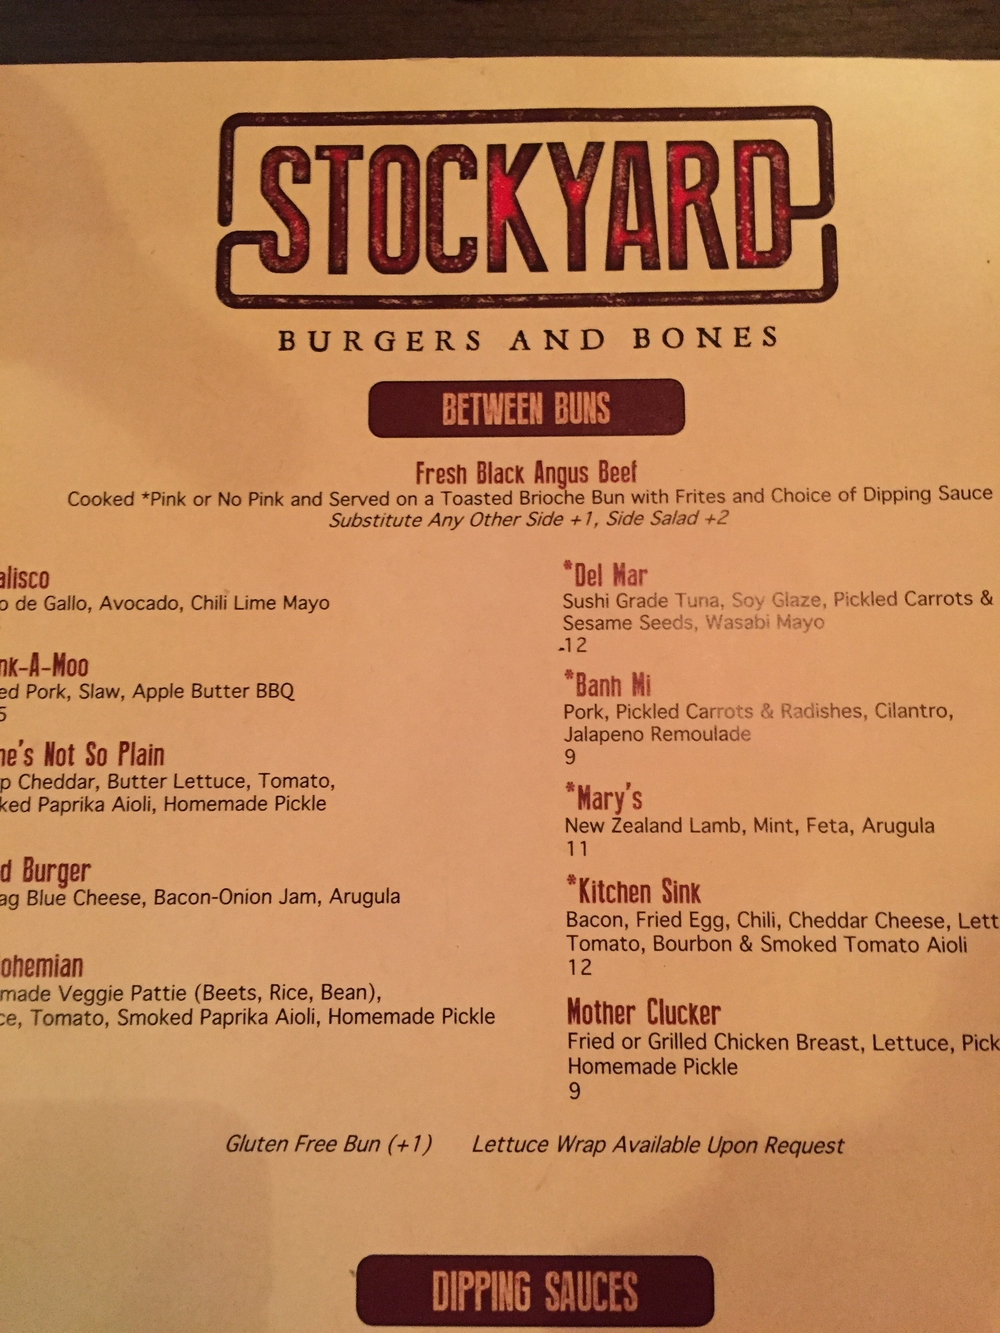 stockyard burgers in marietta ga